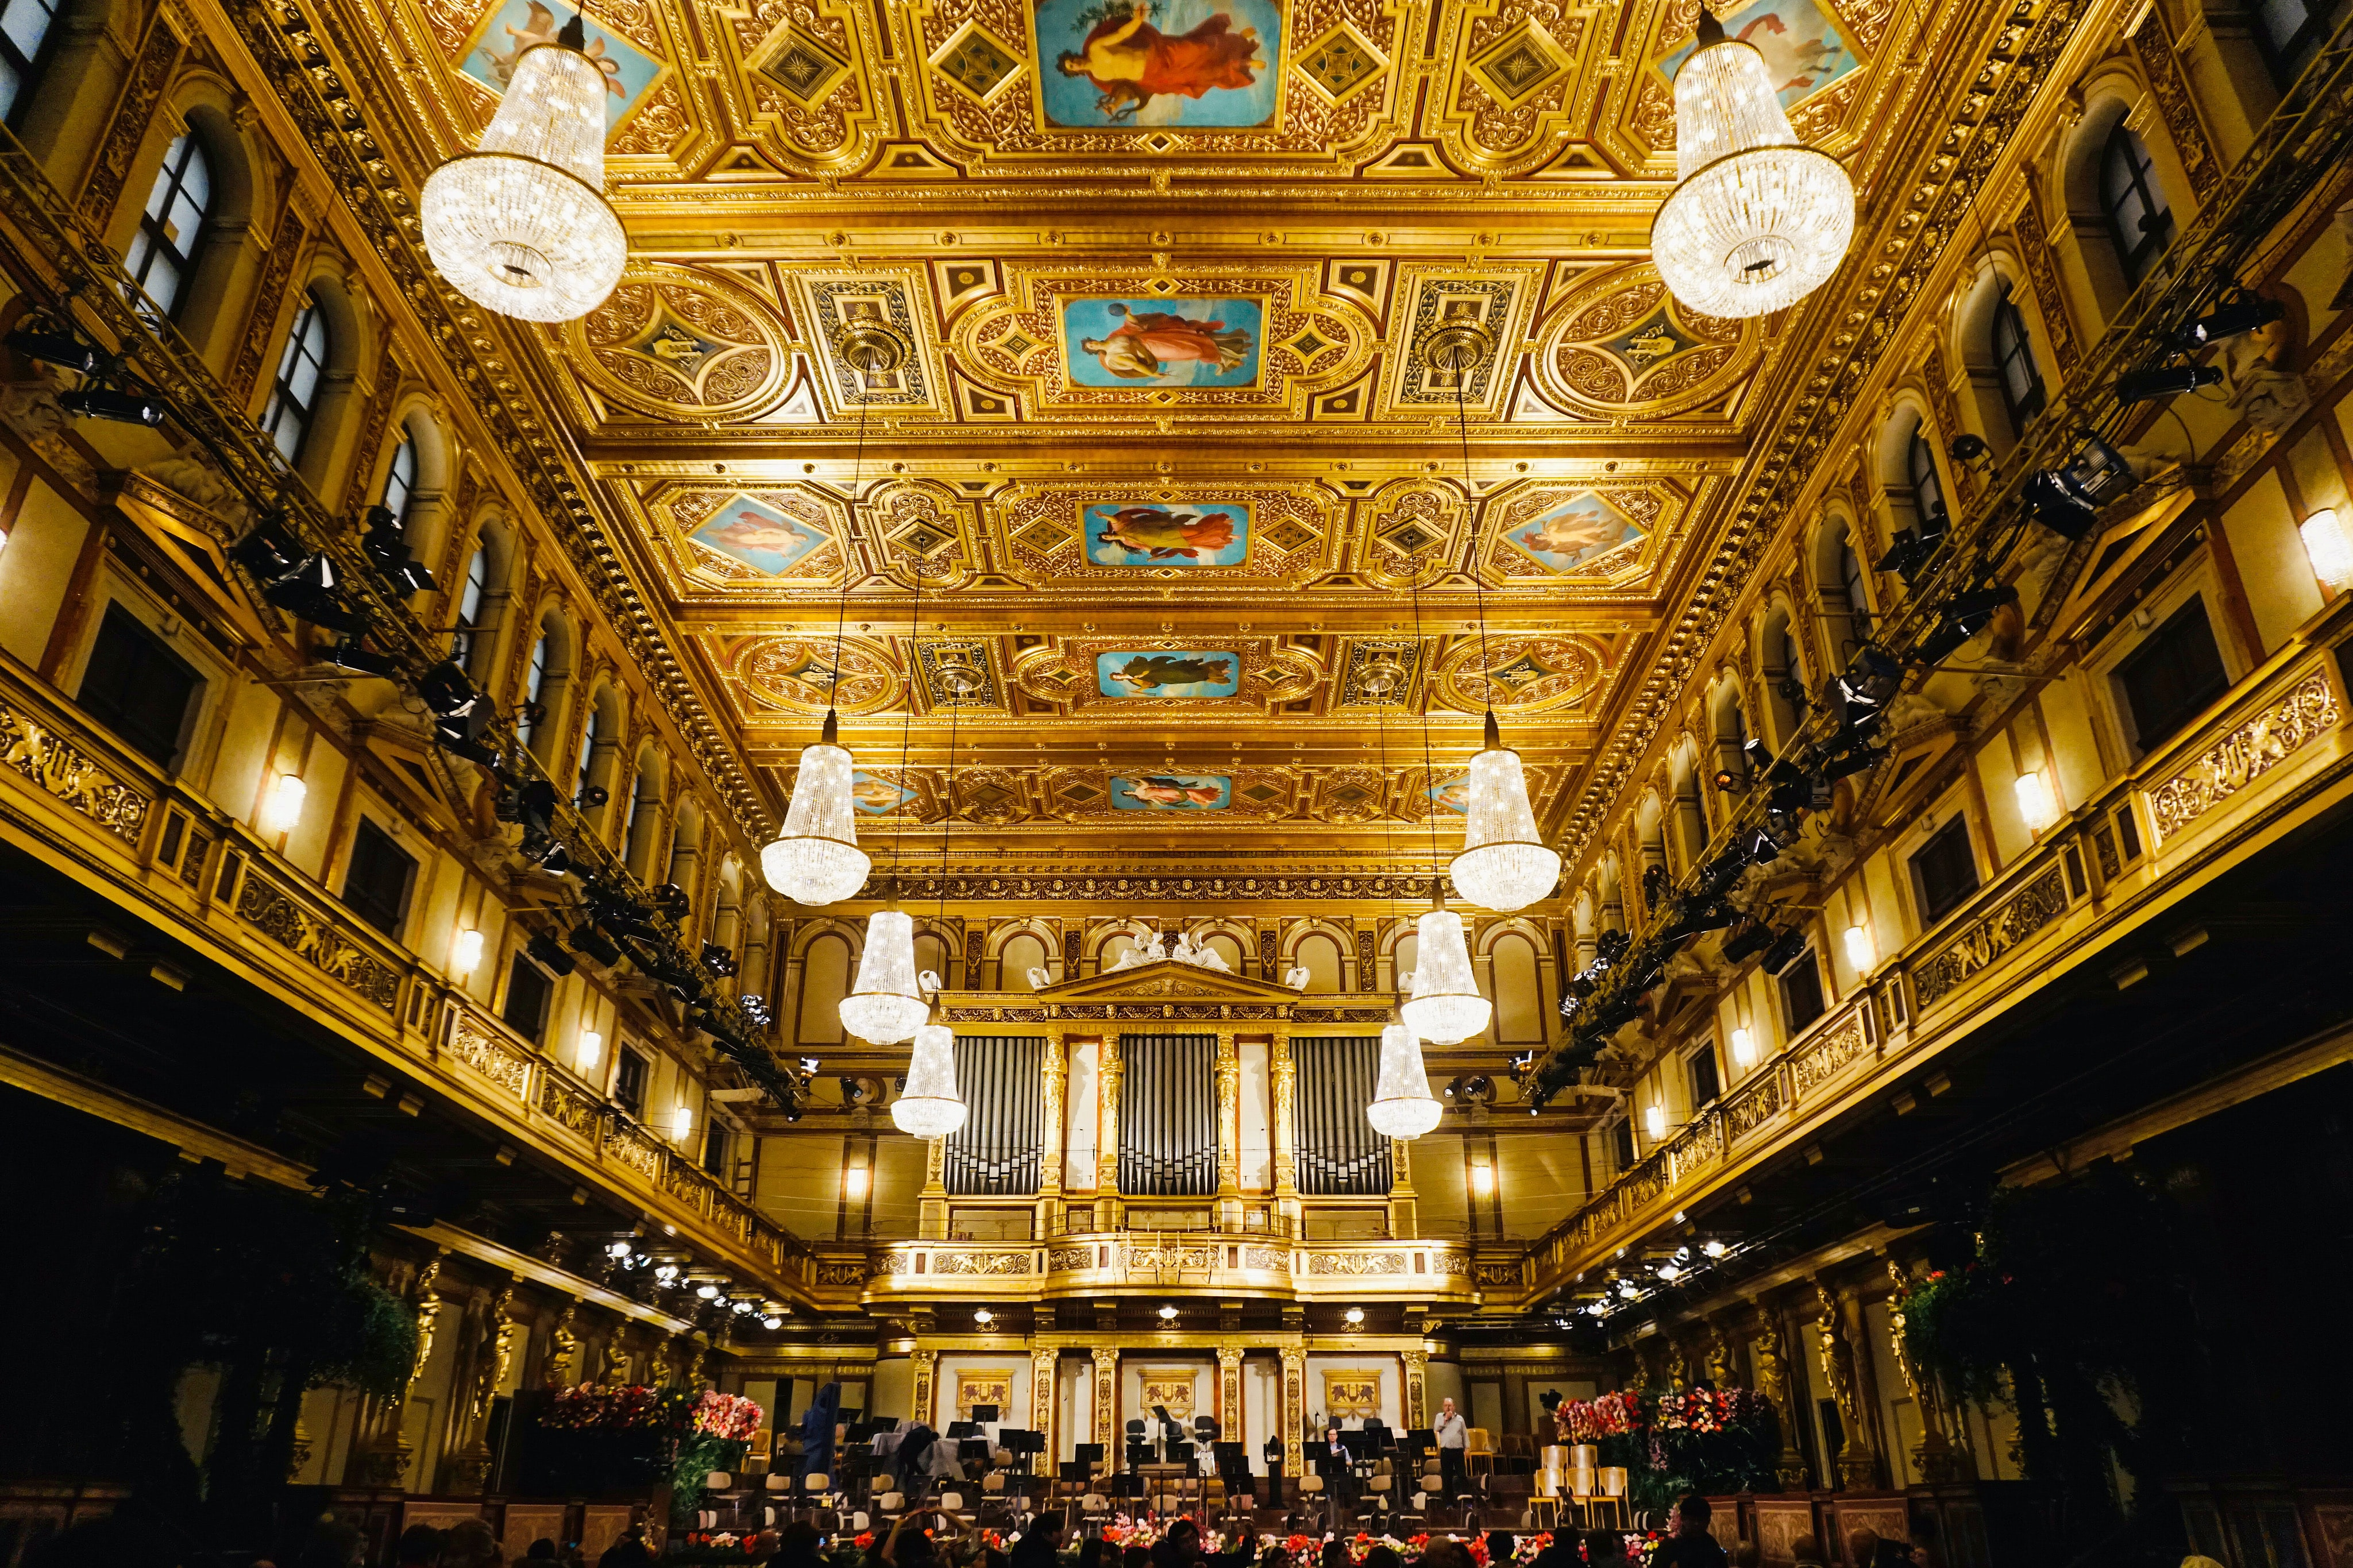 Orchestra, Things to do in Austria in Winter